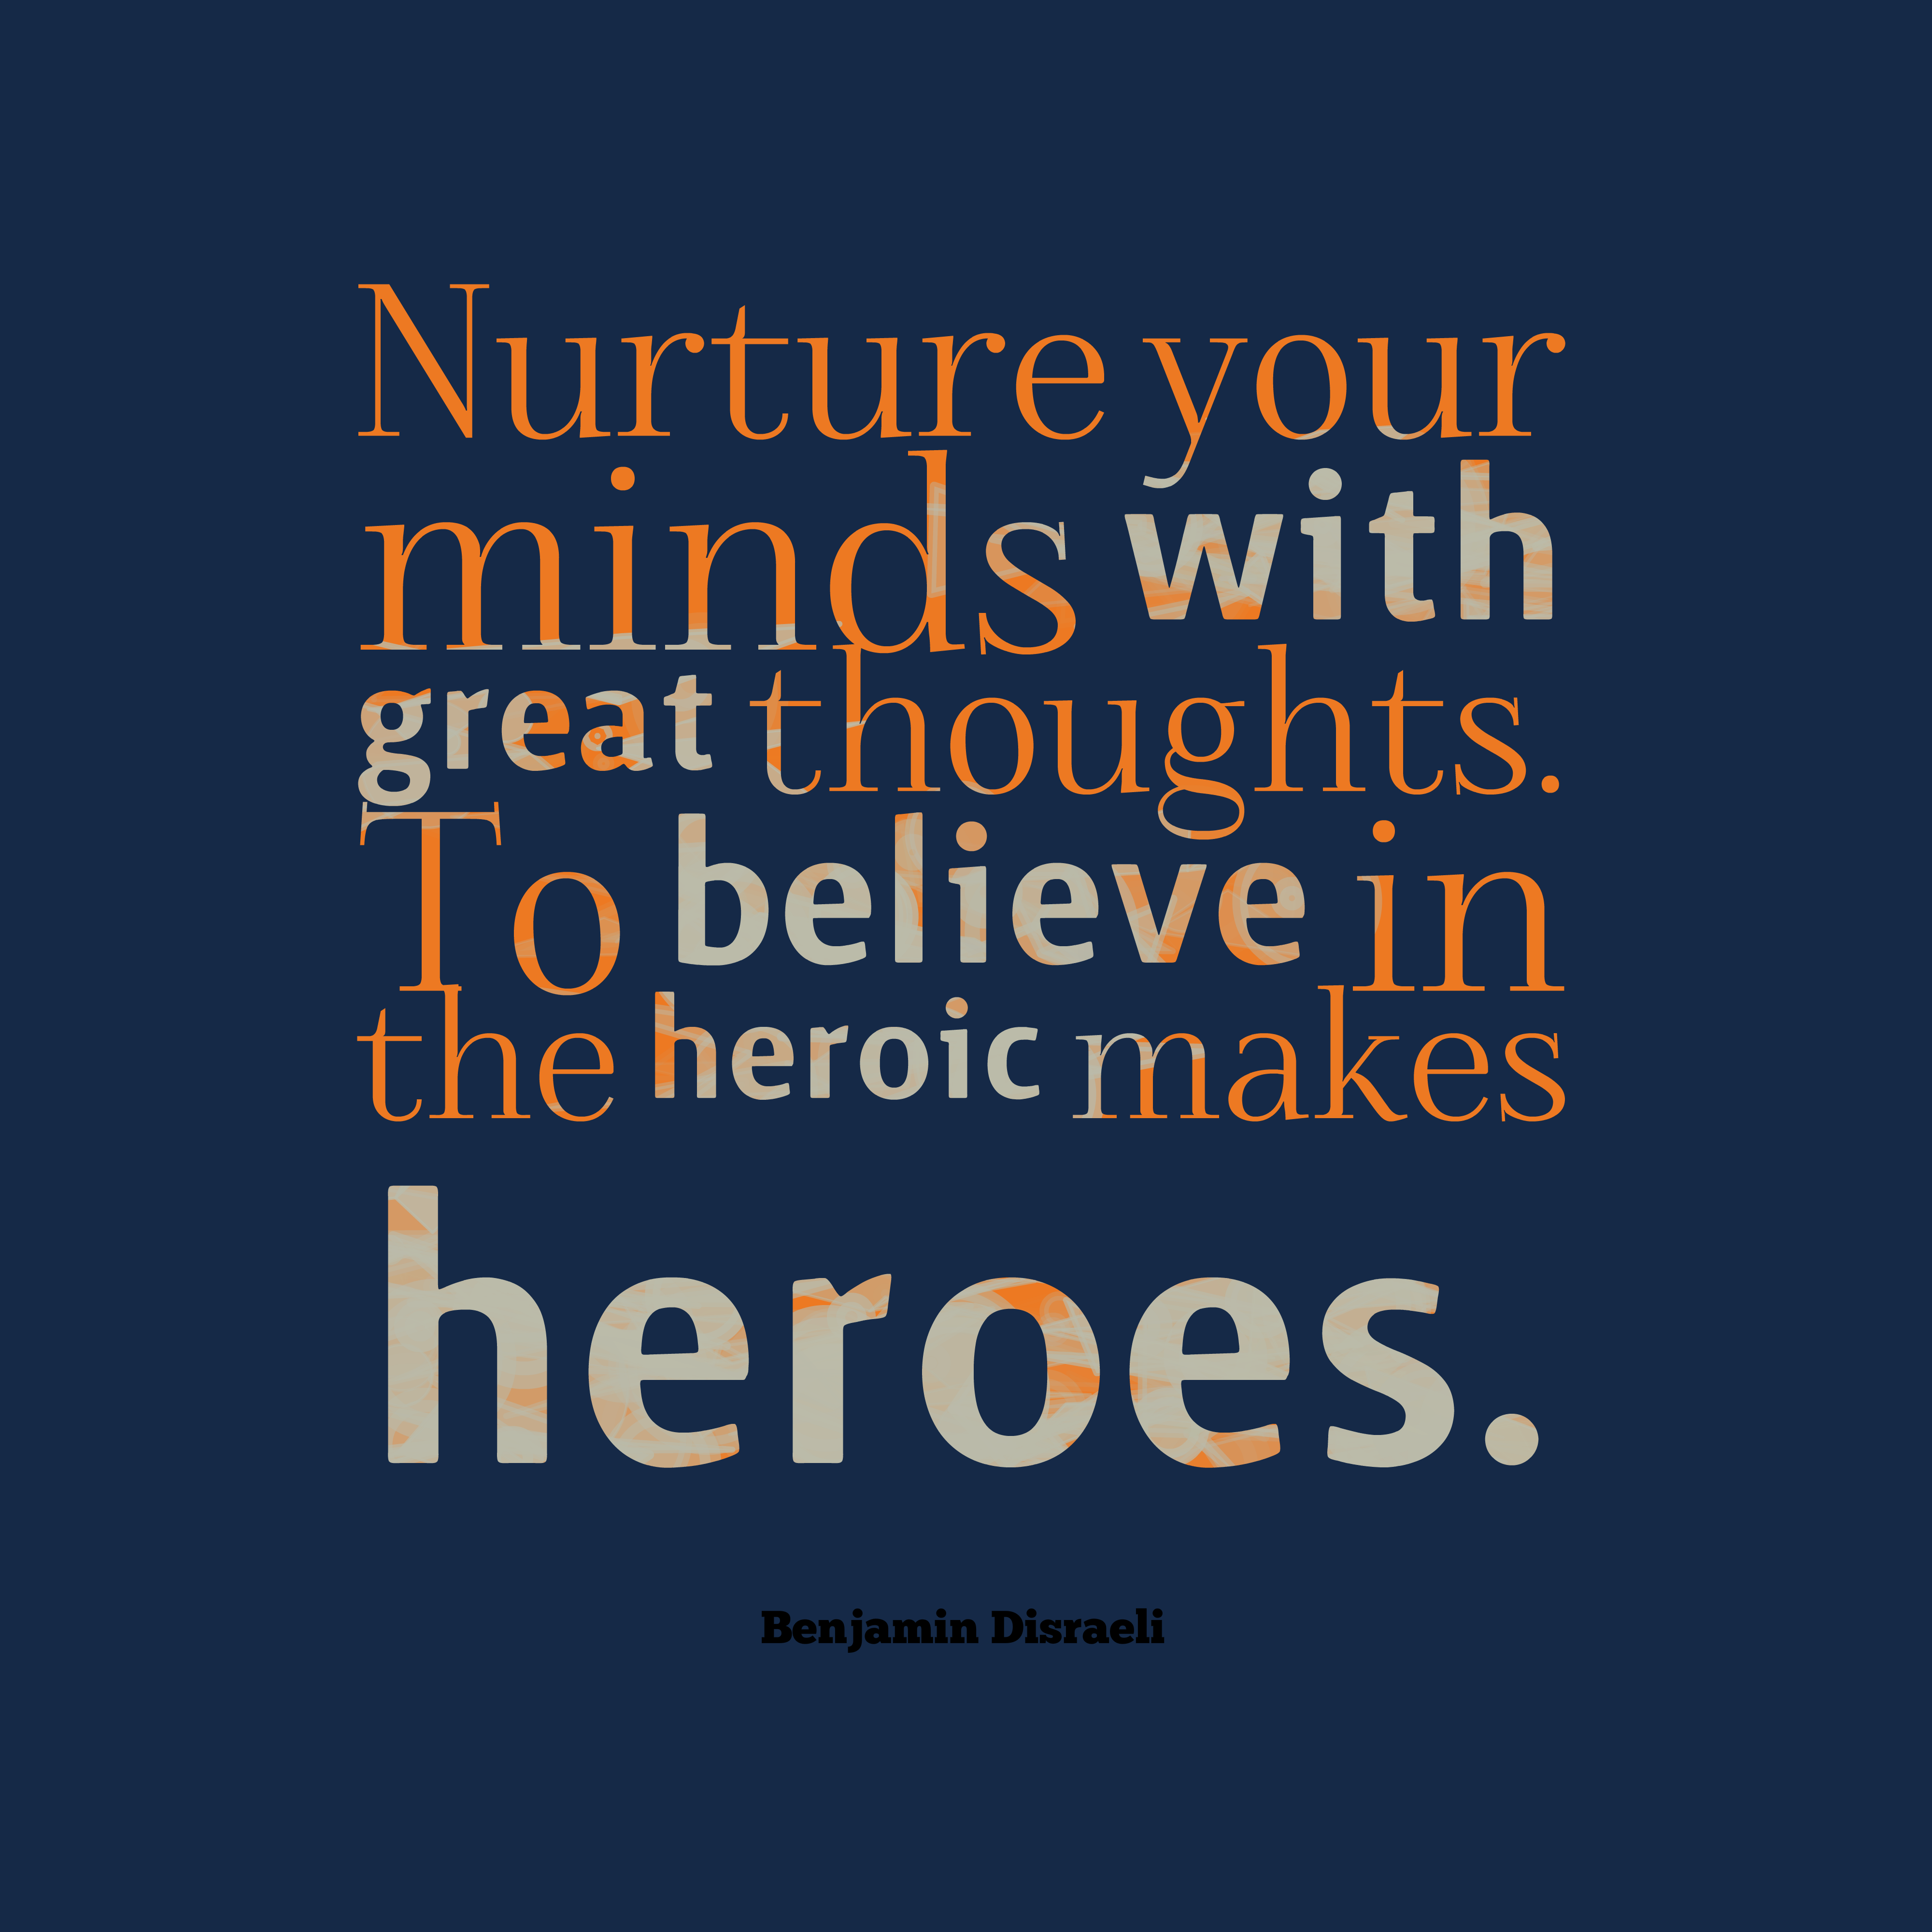 Quotes image of Nurture your minds with great thoughts. To believe in the heroic makes heroes.